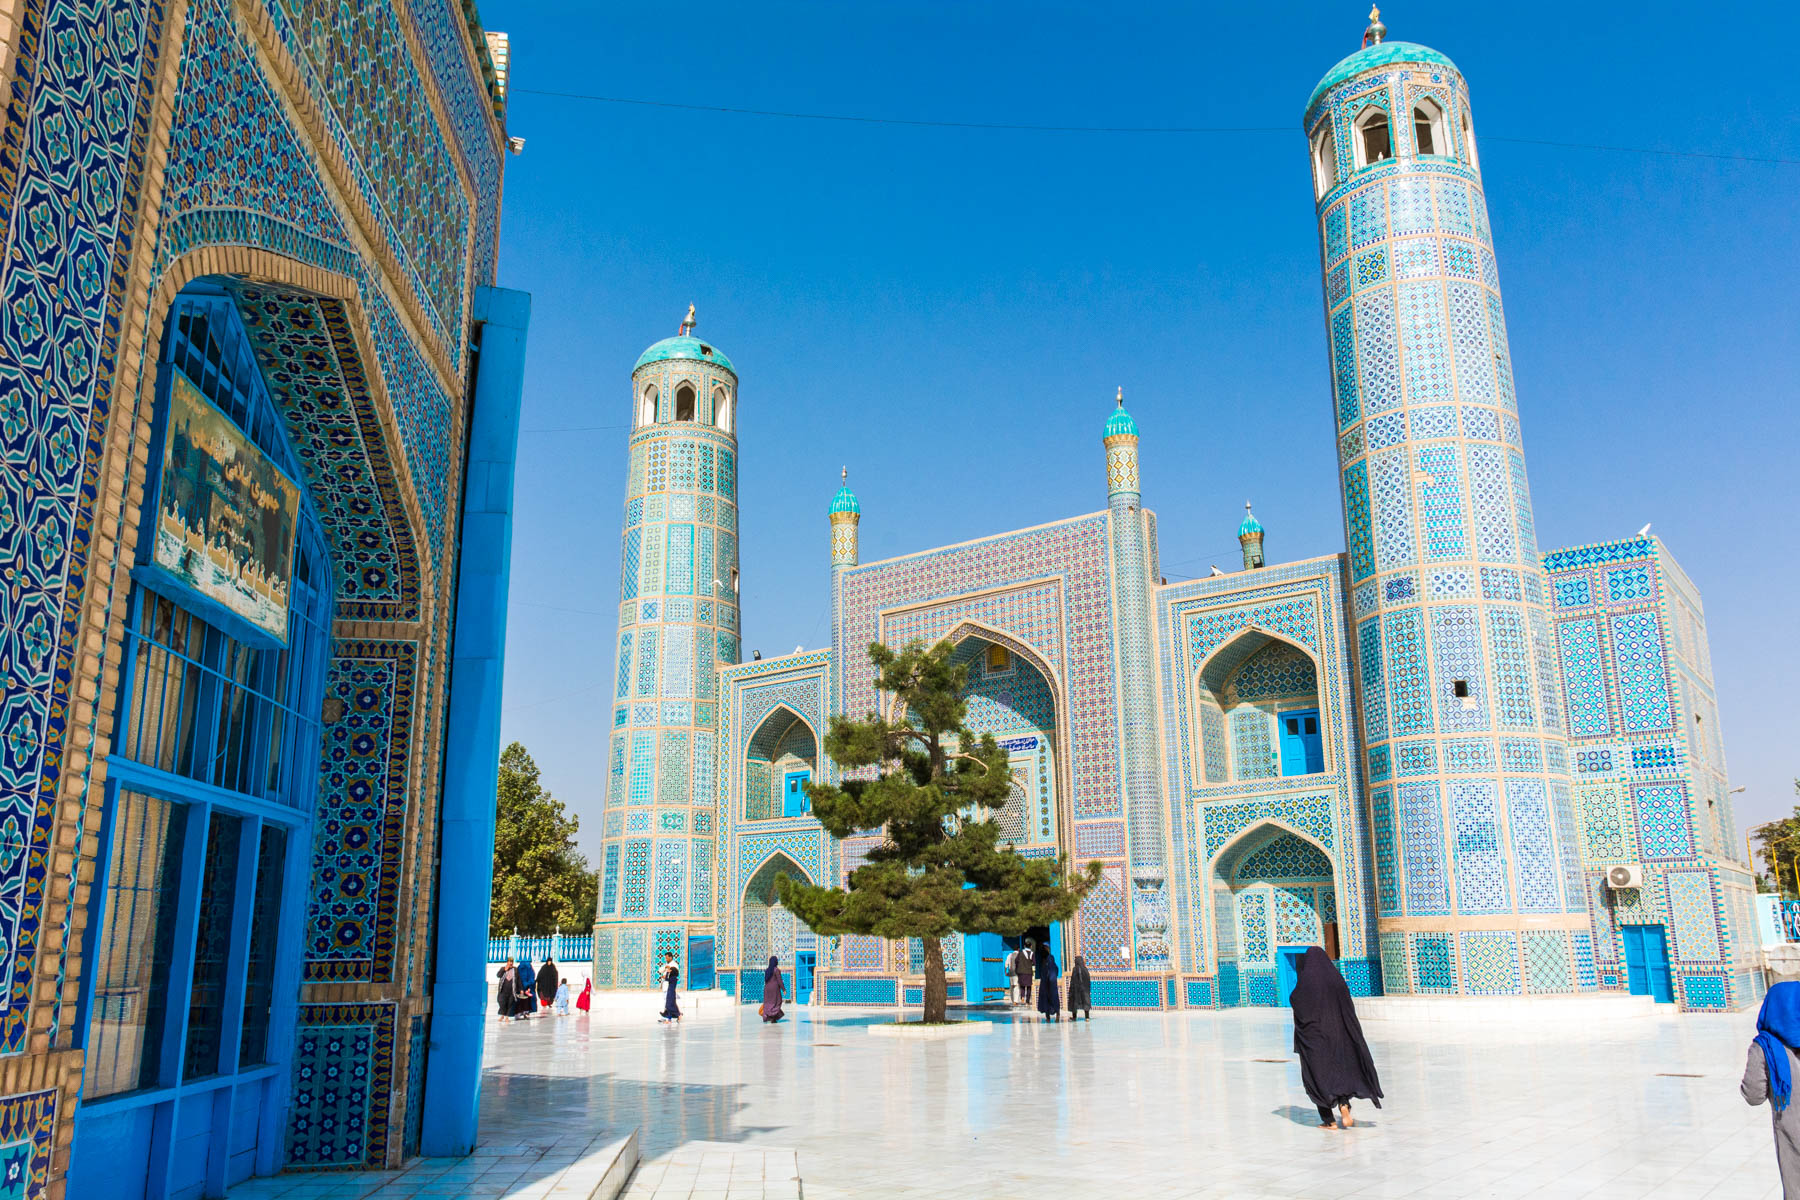 Photos of Mazar-i-Sharif, Afghanistan - A woman walking in the blue mosque - Lost With Purpose